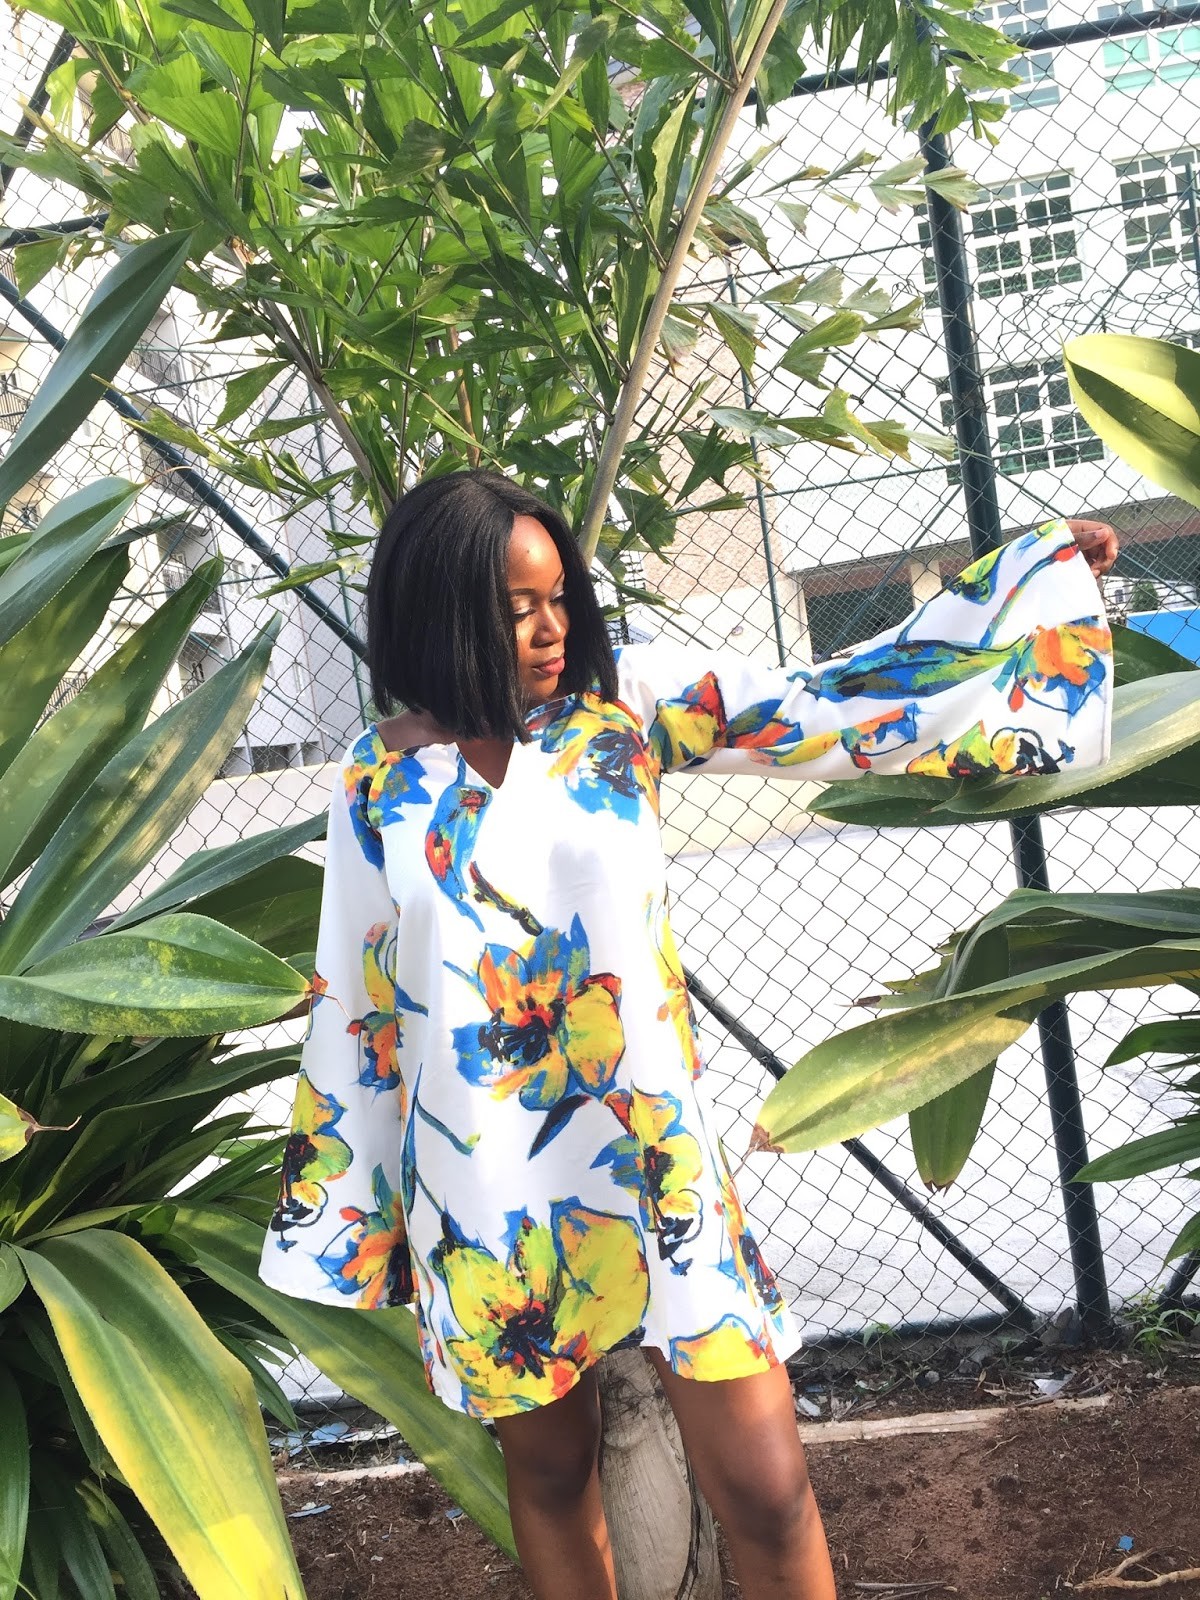 styling a floral shift dress this spring and summer season. How to style a shift dress for an event